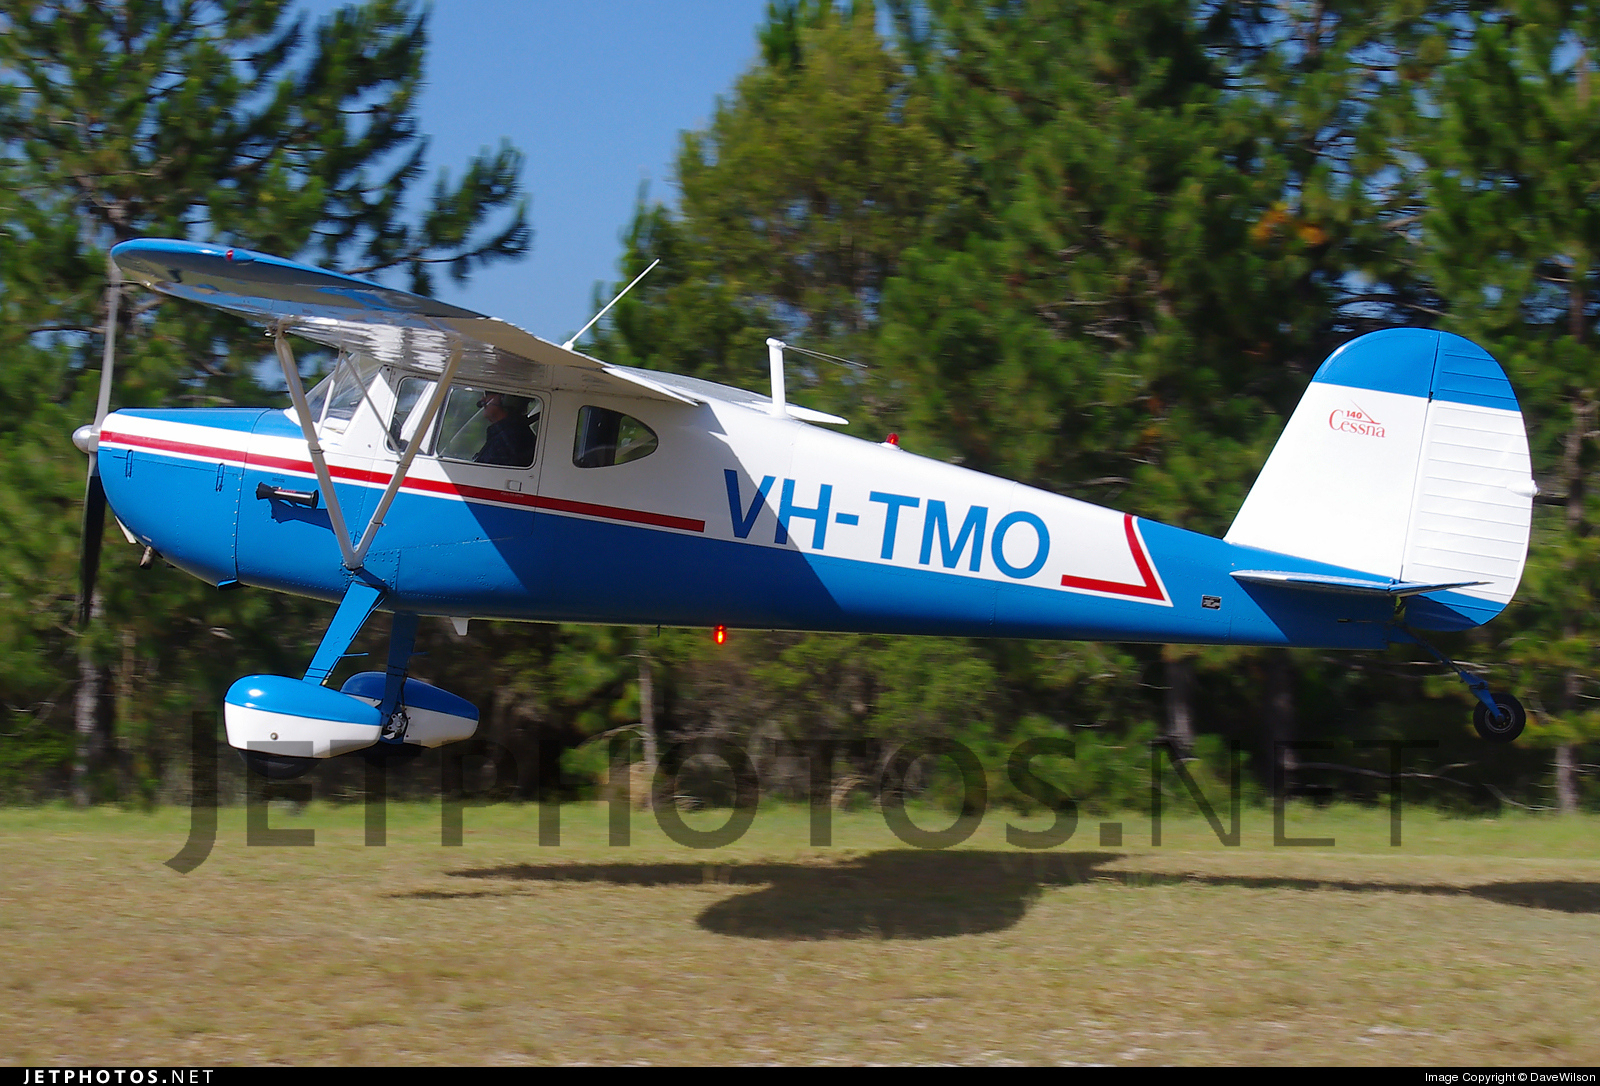 VH-TMO - Cessna 140 - Private